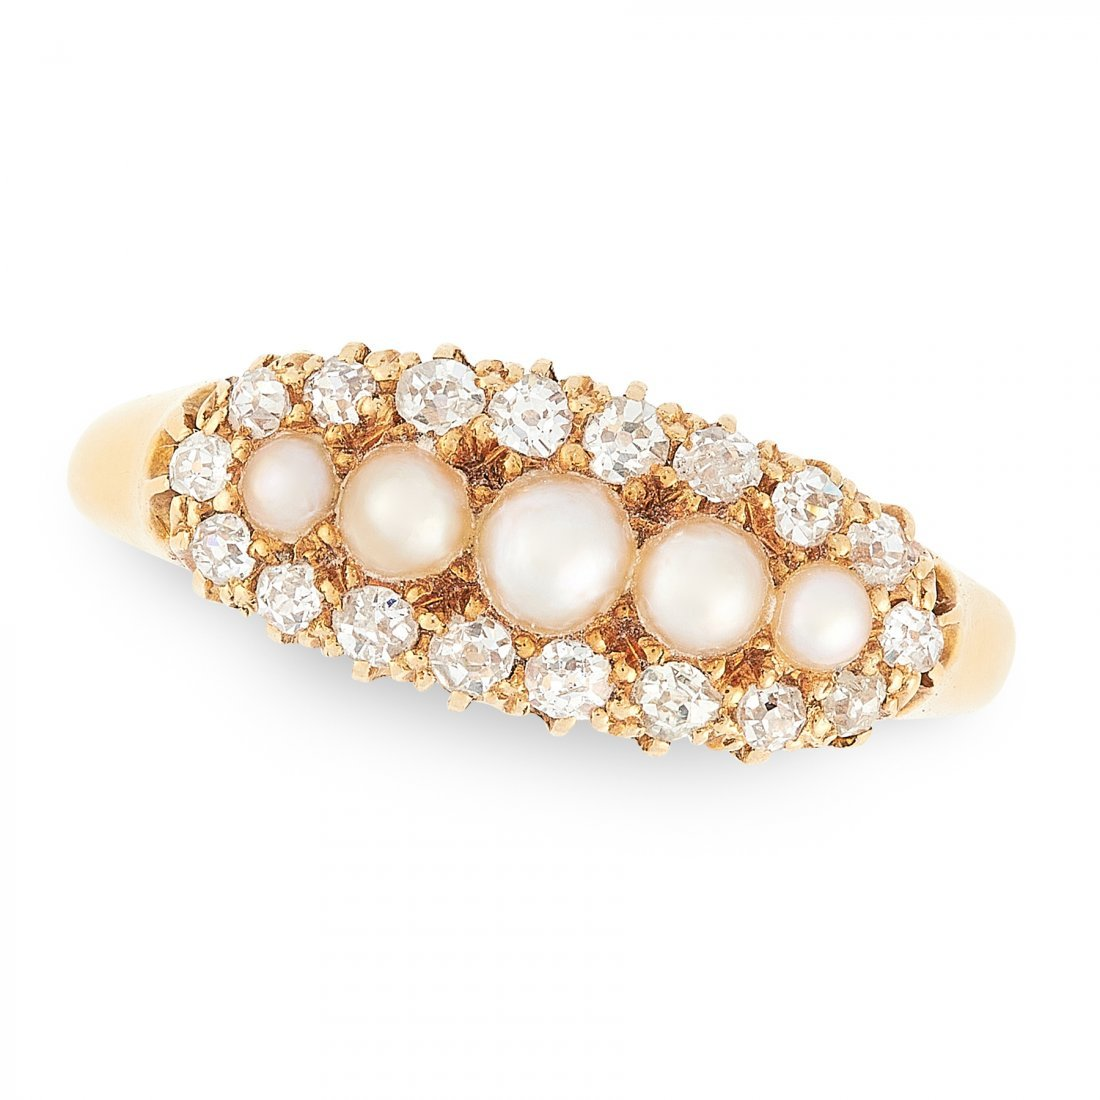 AN ANTIQUE PEARL AND DIAMOND RING, 1900 in 18ct yellow